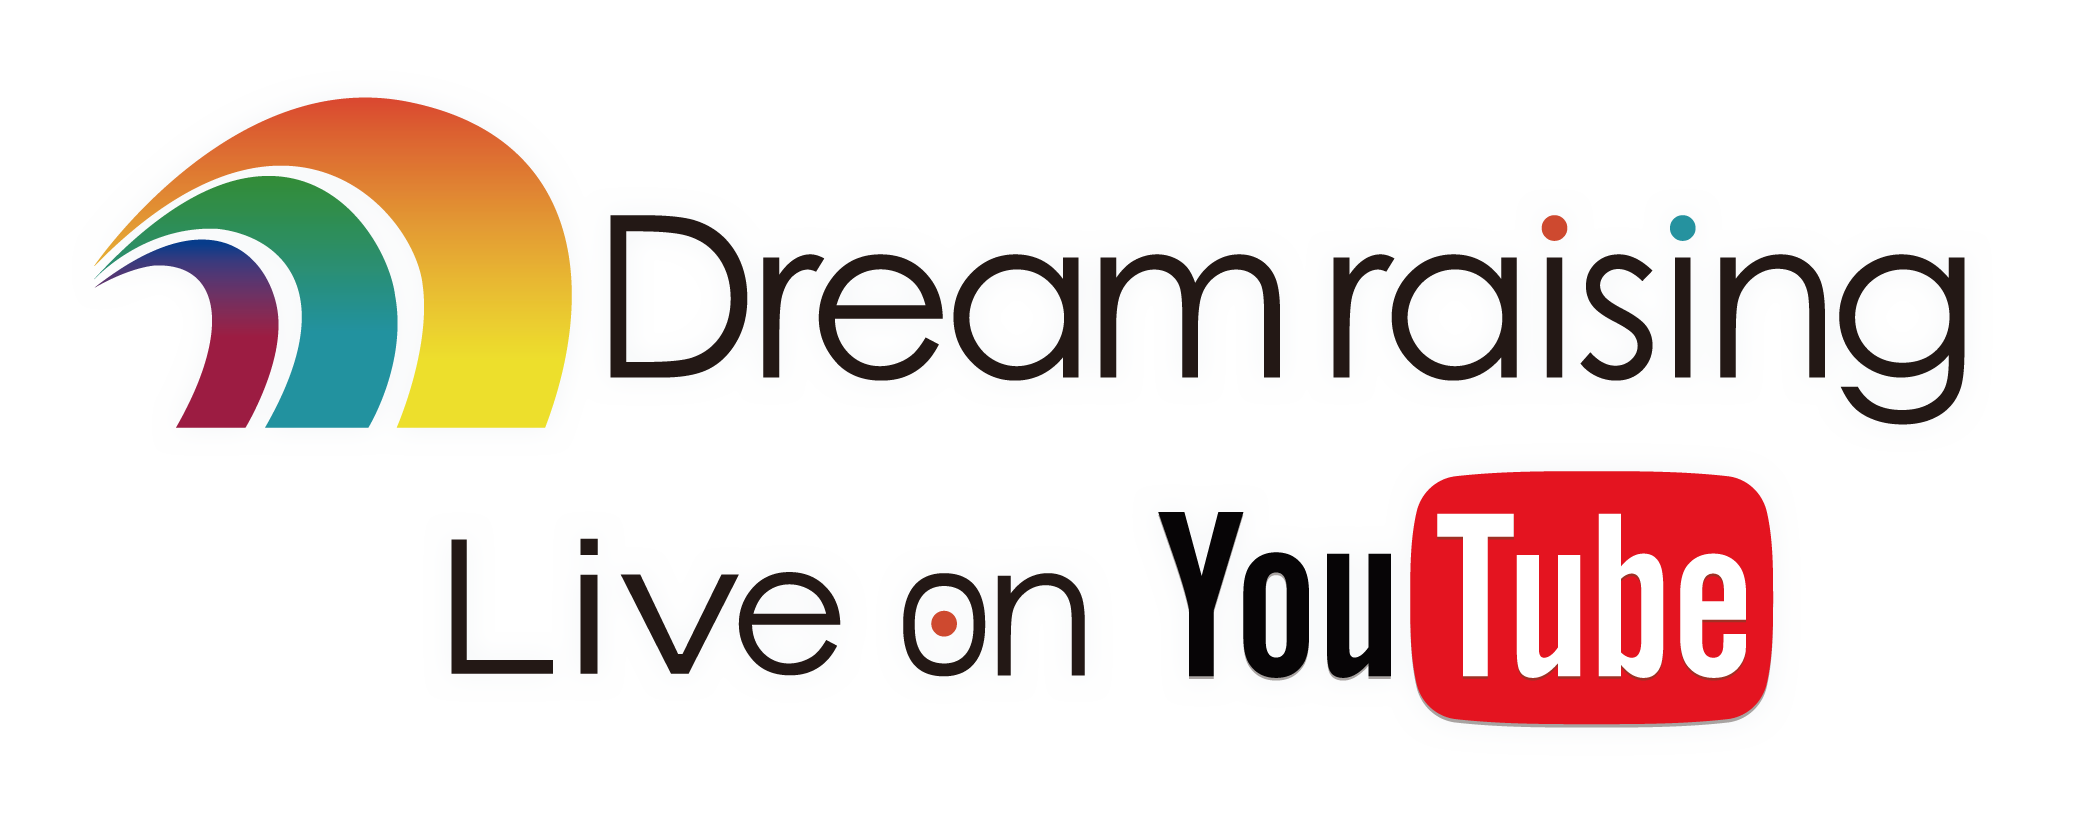 dreamrising_logo-live-youtube